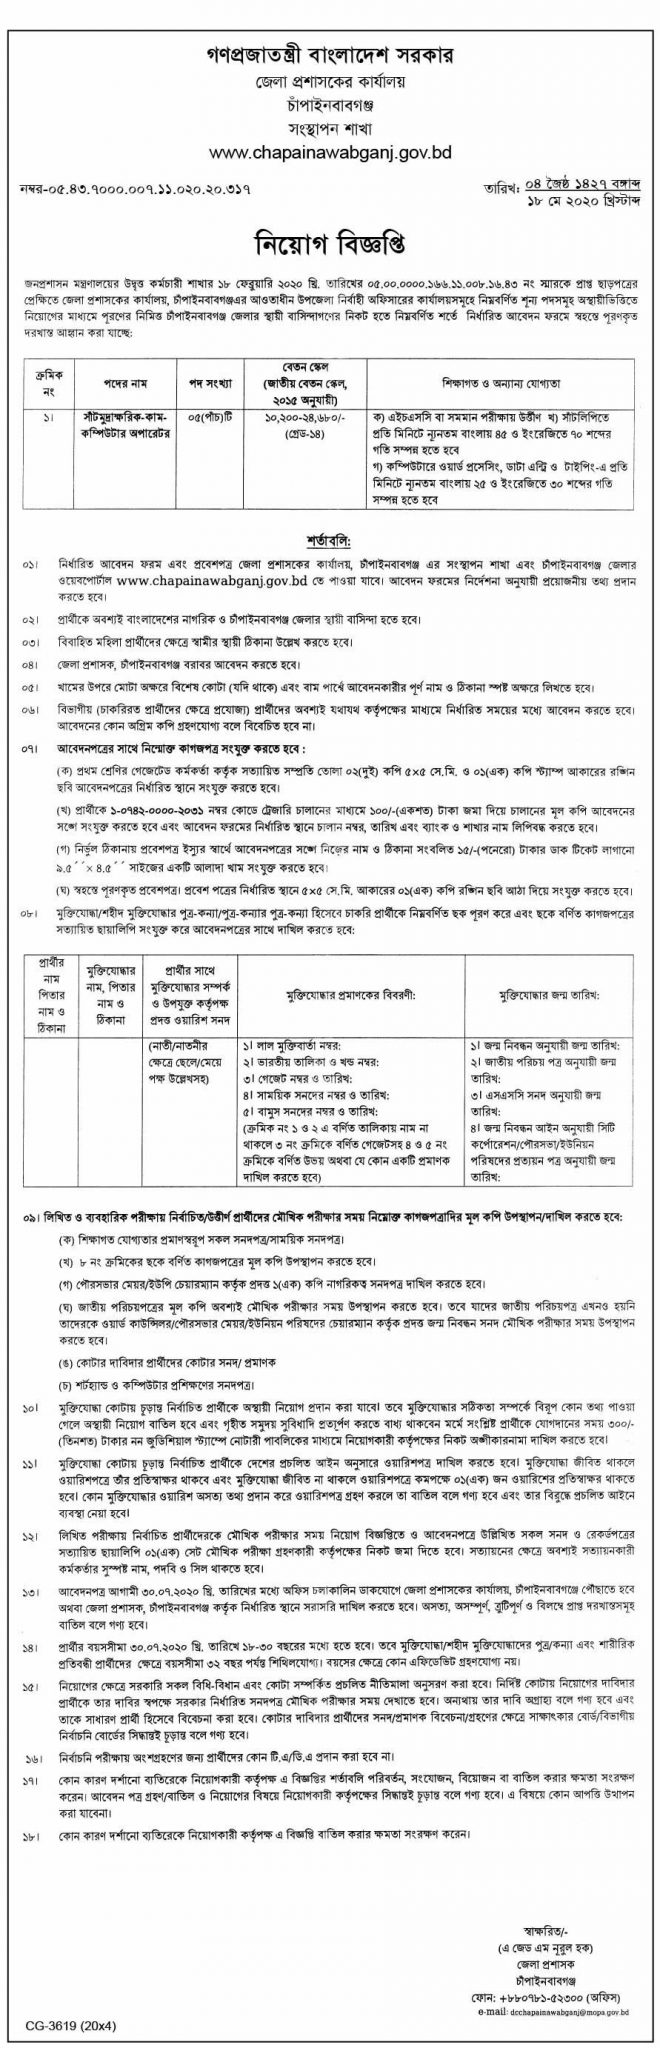 Chapainawabganj DC Office Job Circular